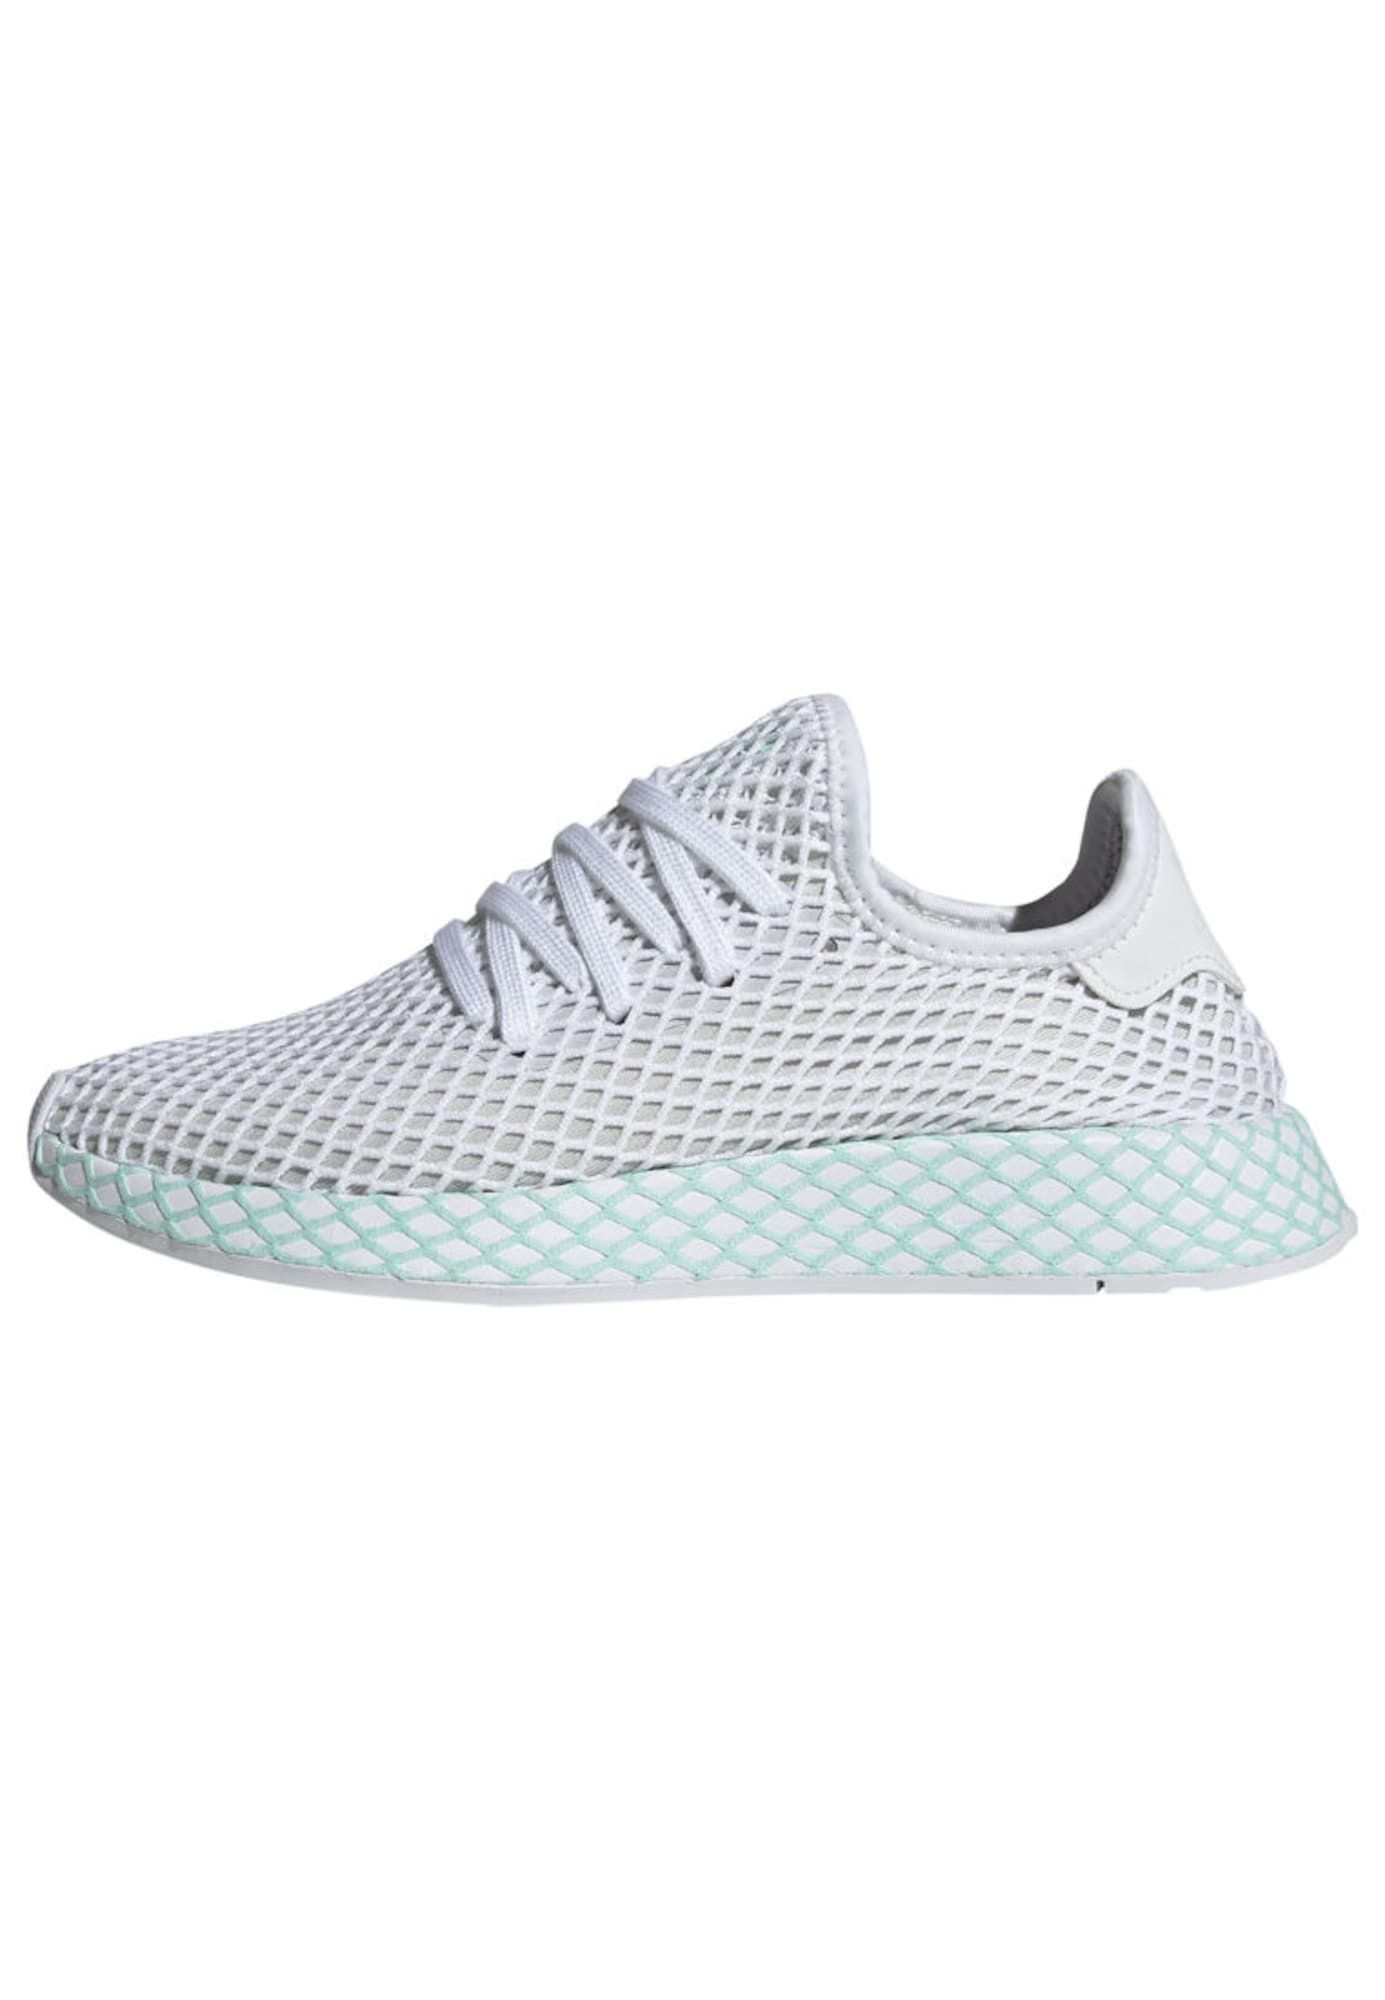 ADIDAS ORIGINALS Sneaker 'DEERUPT RUNNER' Damen, Mint / Weiß ...